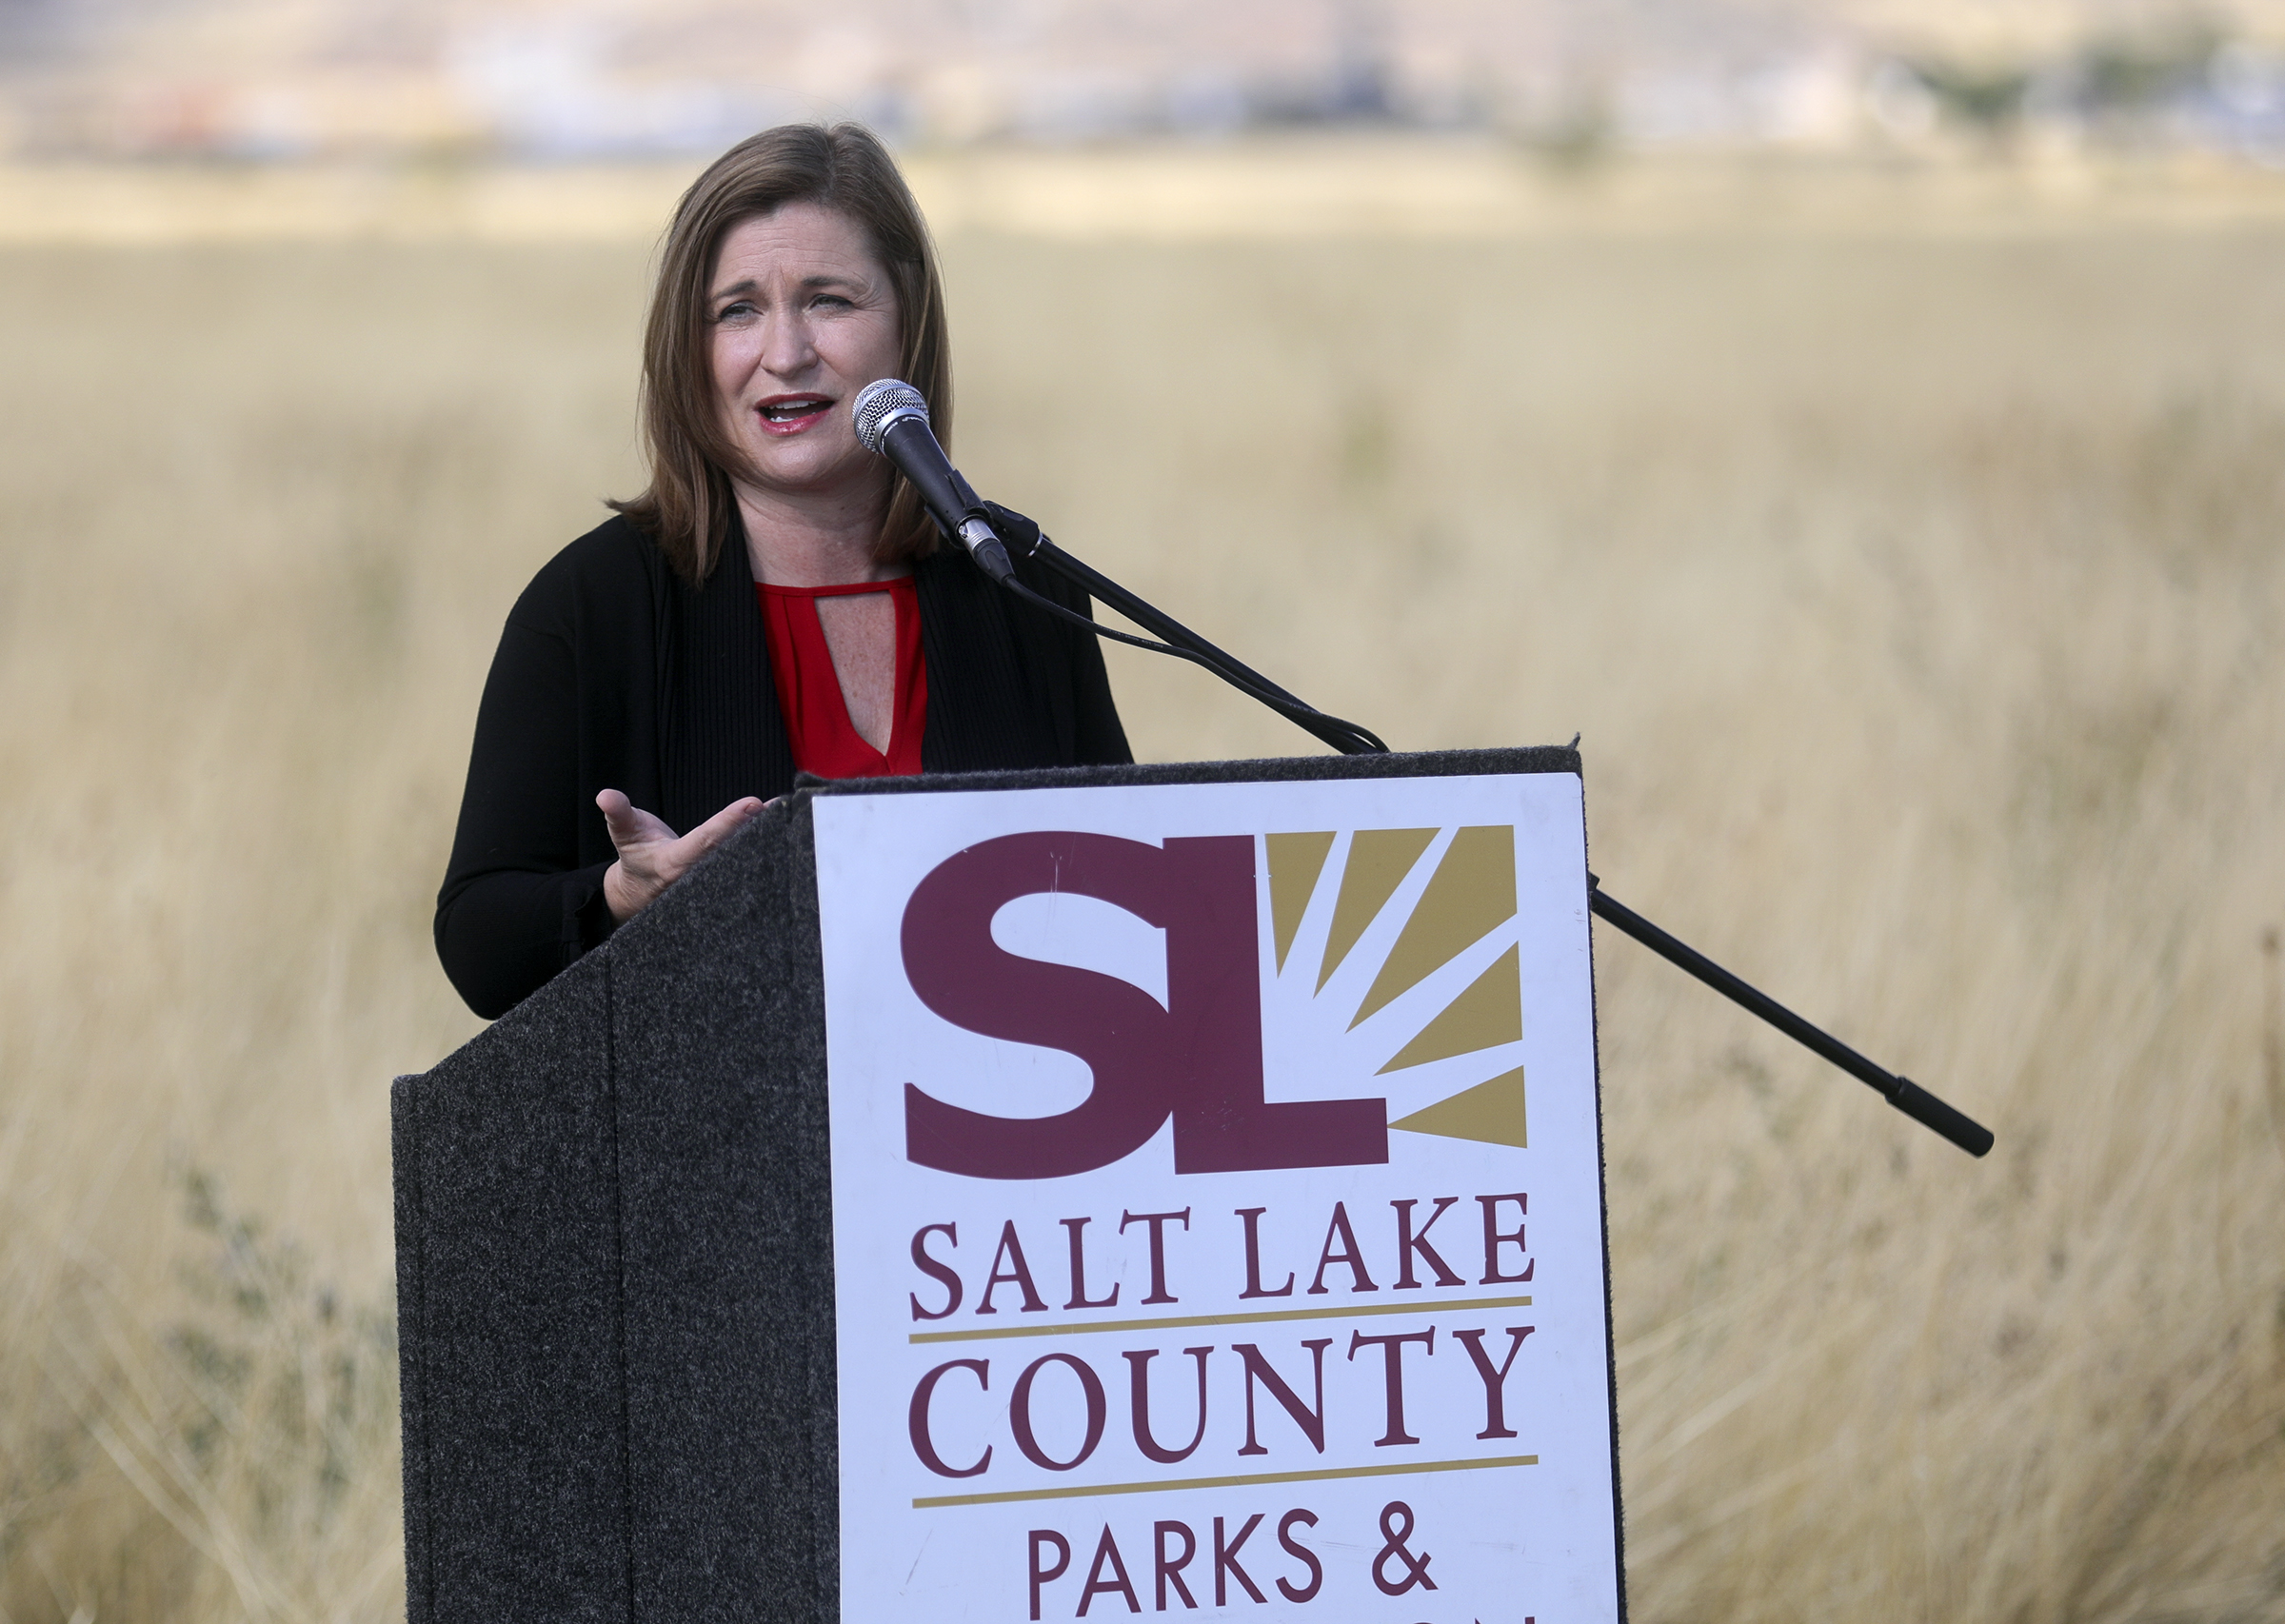 Salt Lake County Mayor Jenny Wilson speaks at a groundbreaking ceremony for a new park at 4042 S. 7200 West in Magna on Wednesday, Oct. 2, 2019. The park will feature a multipurpose field, playground, splash pad, walking paths, pavilions and restrooms.